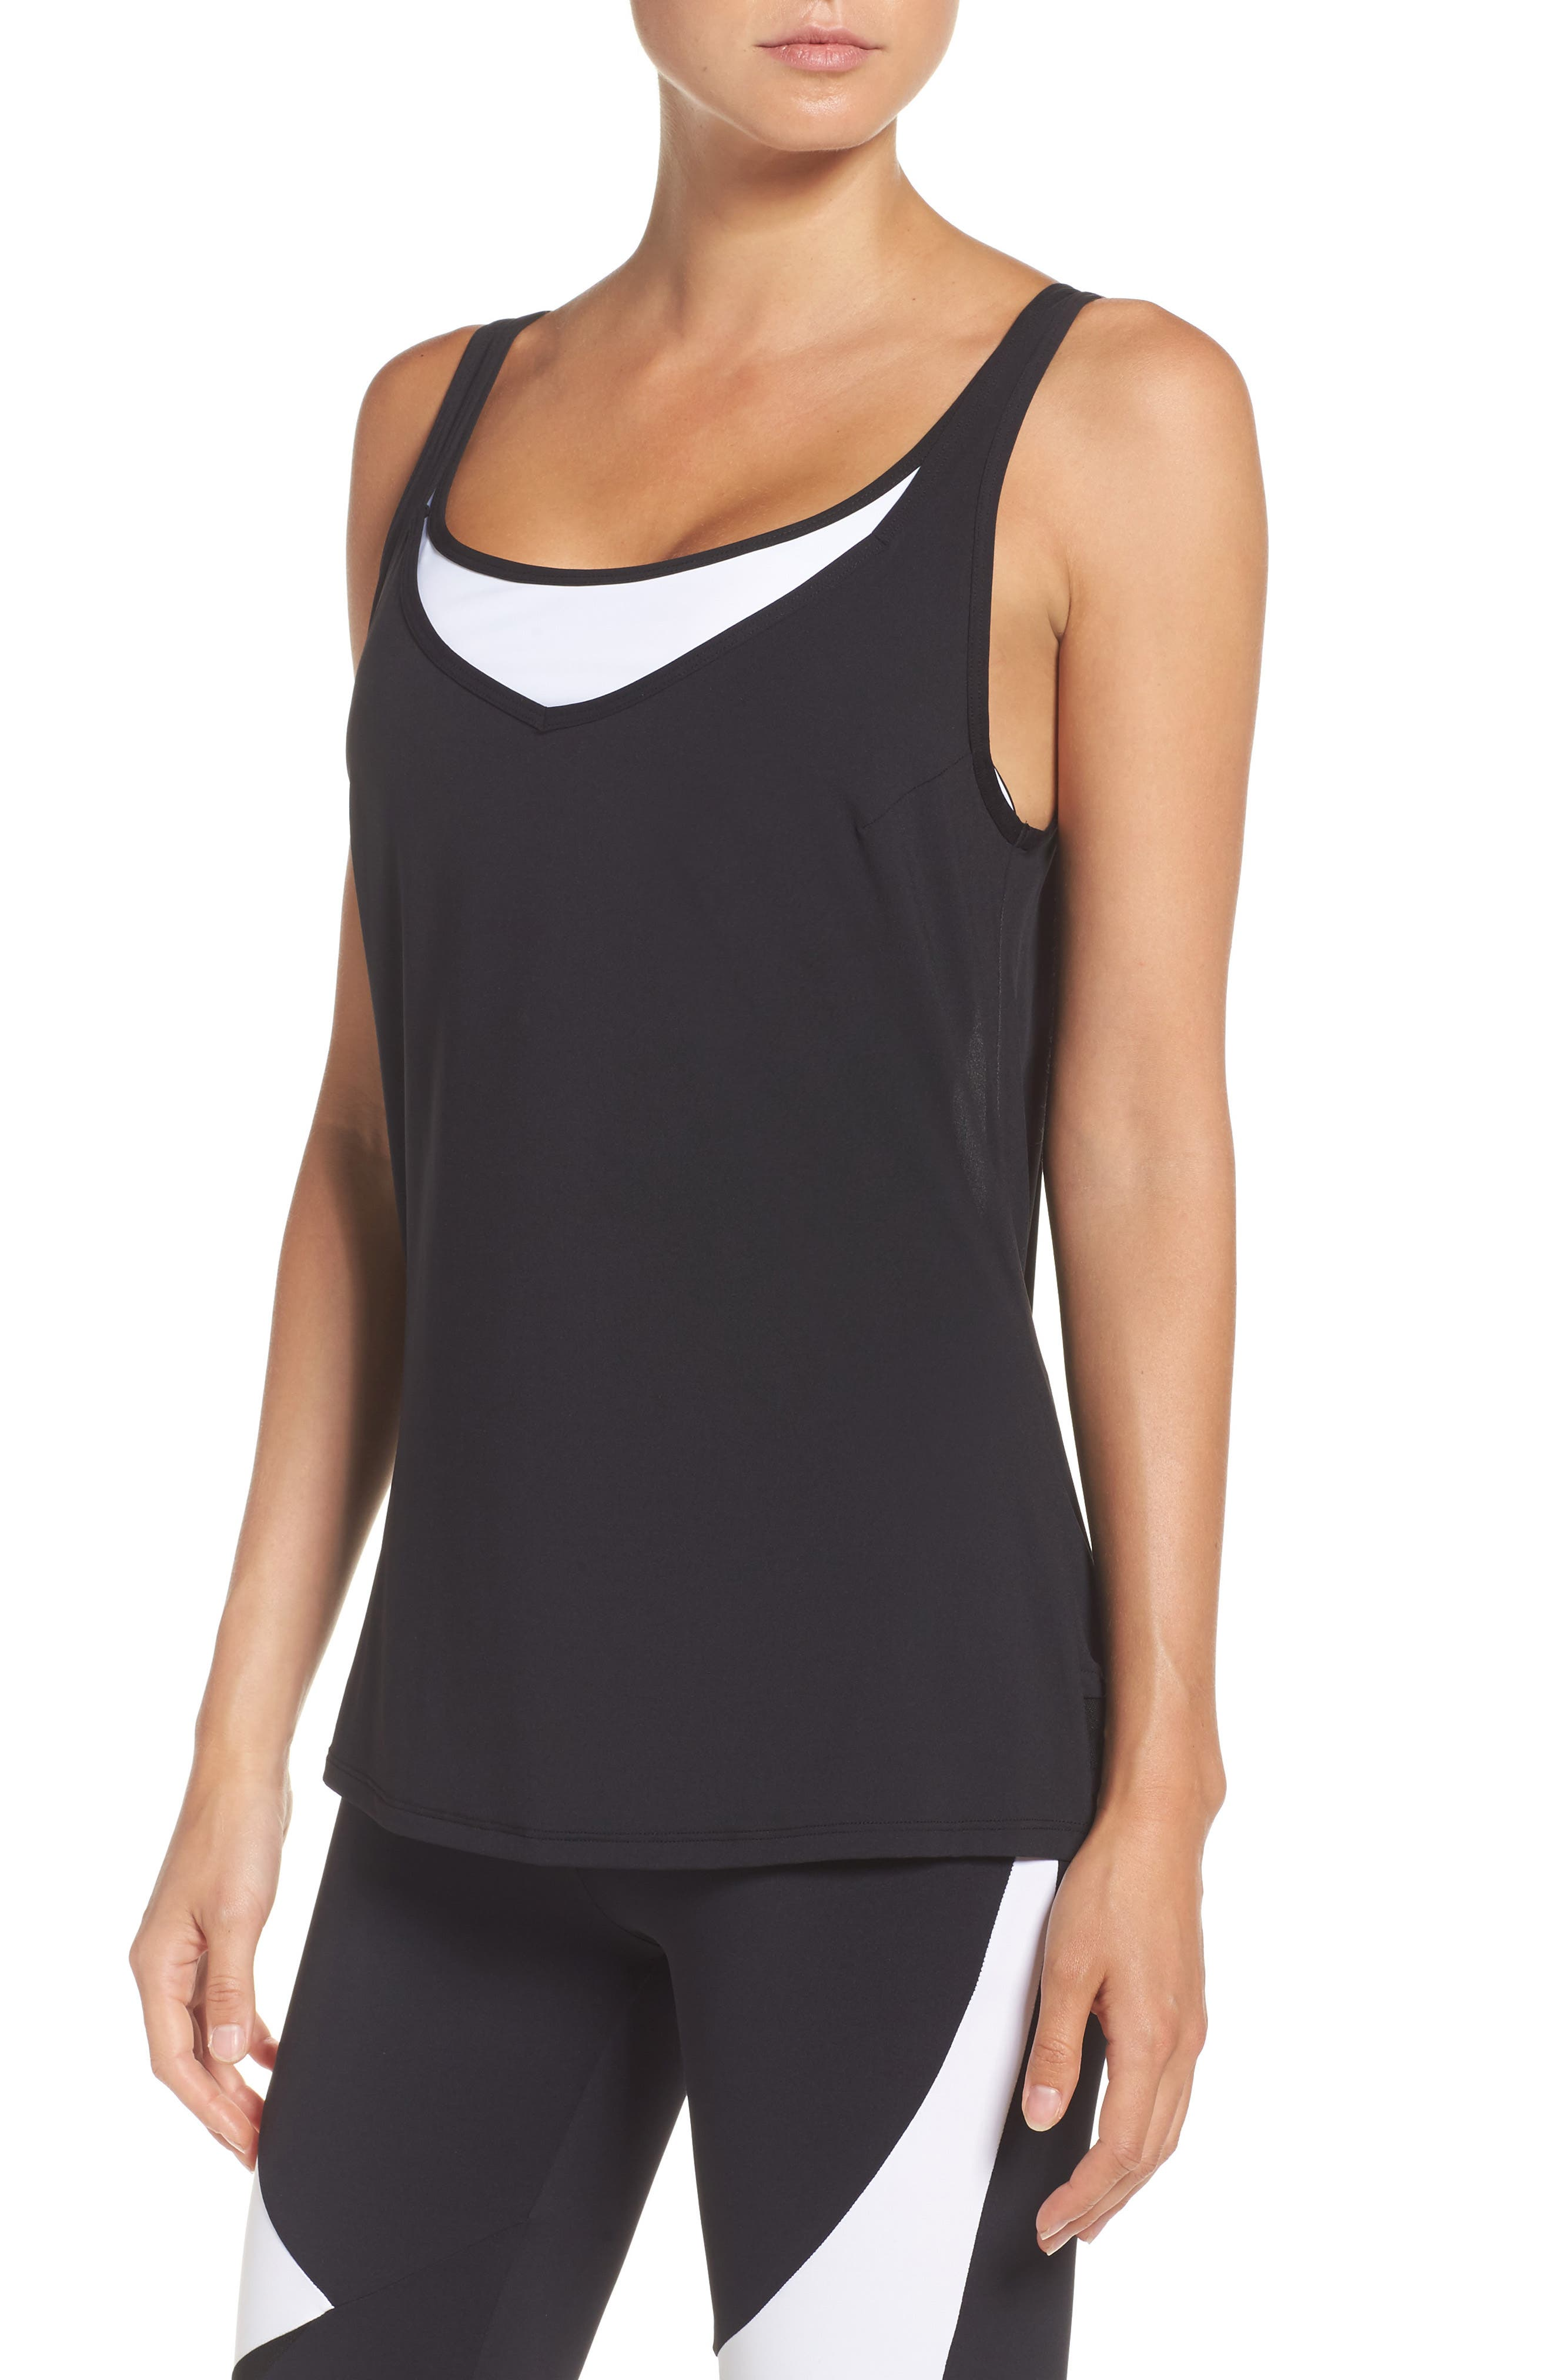 Main Image - BoomBoom Athletica Grace Tank & Sports Bra